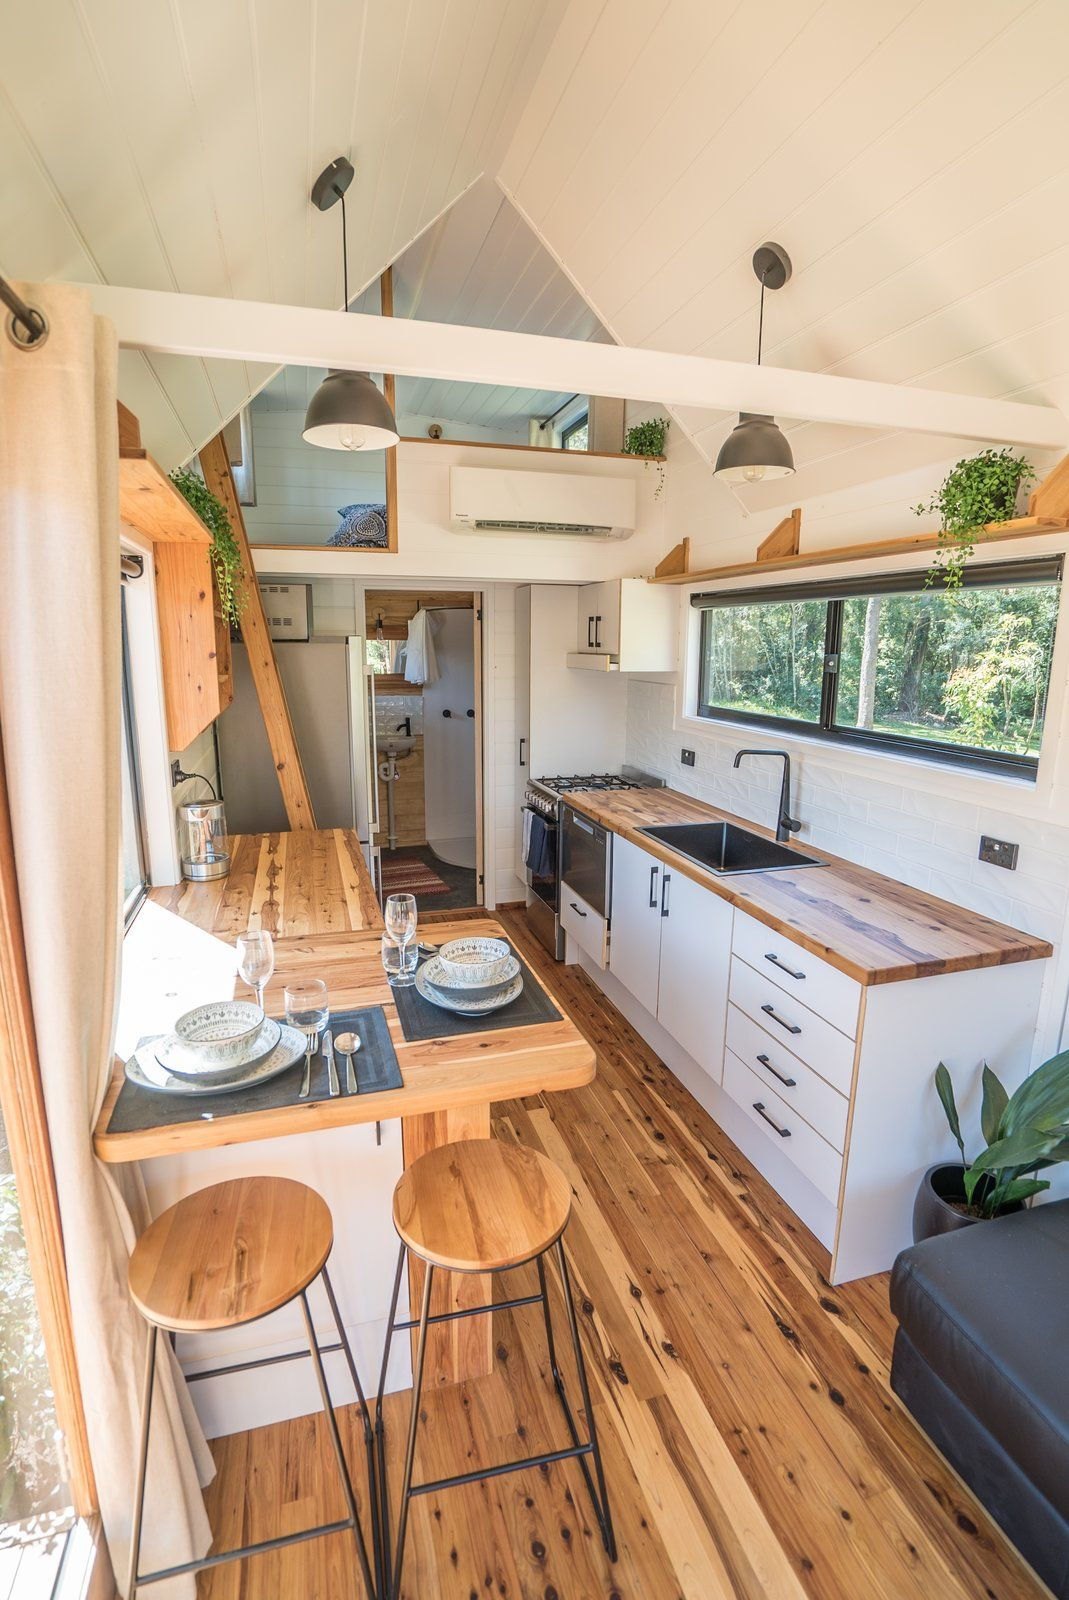 Sojourner by Häuslein Tiny House Co. With Slide-Out Living Area